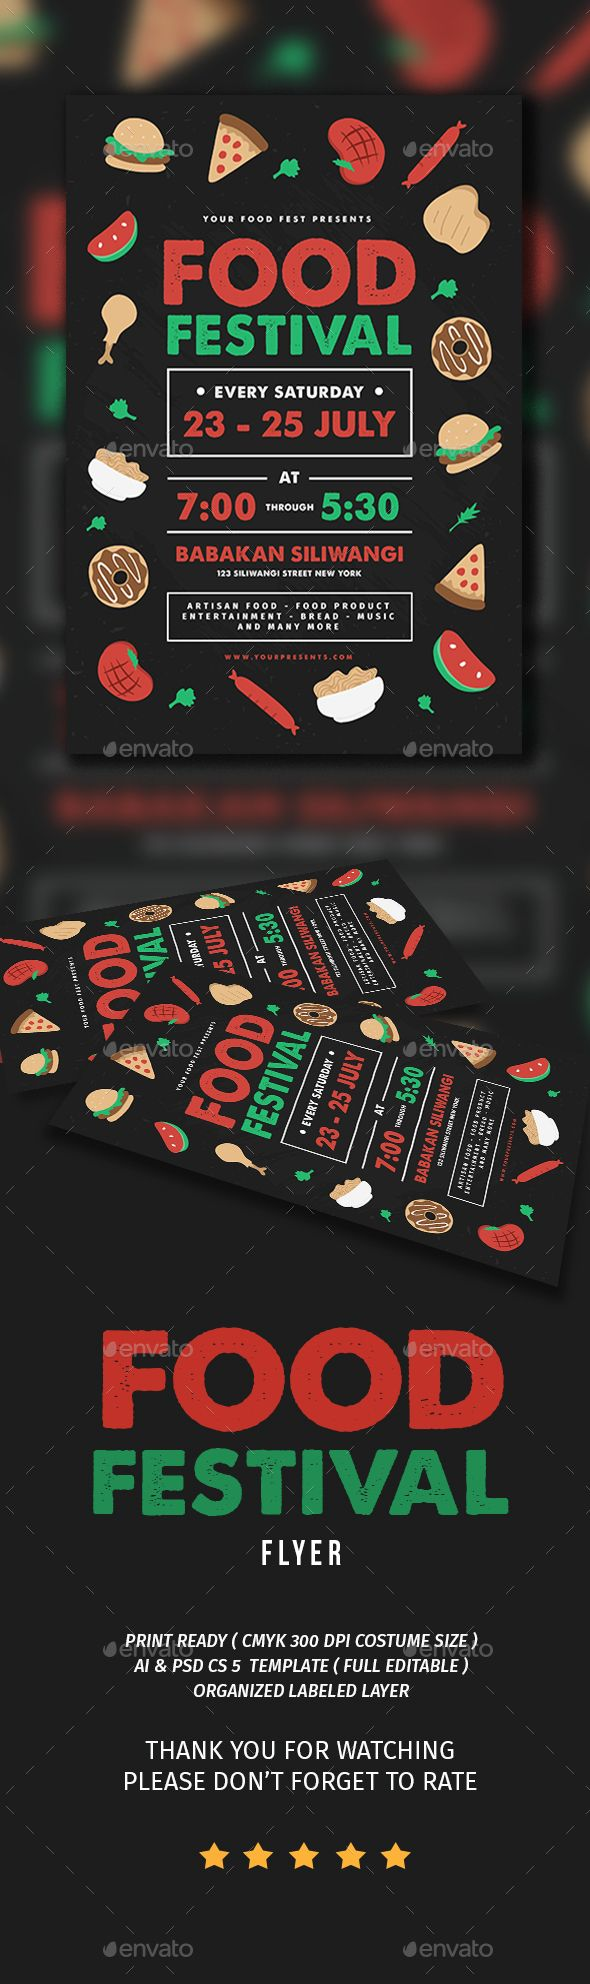 Food Festival Flyer Template PSD, AI Illustrator. Download here: https://graphicriver.net/item/food-festival/17043748?ref=ksioks